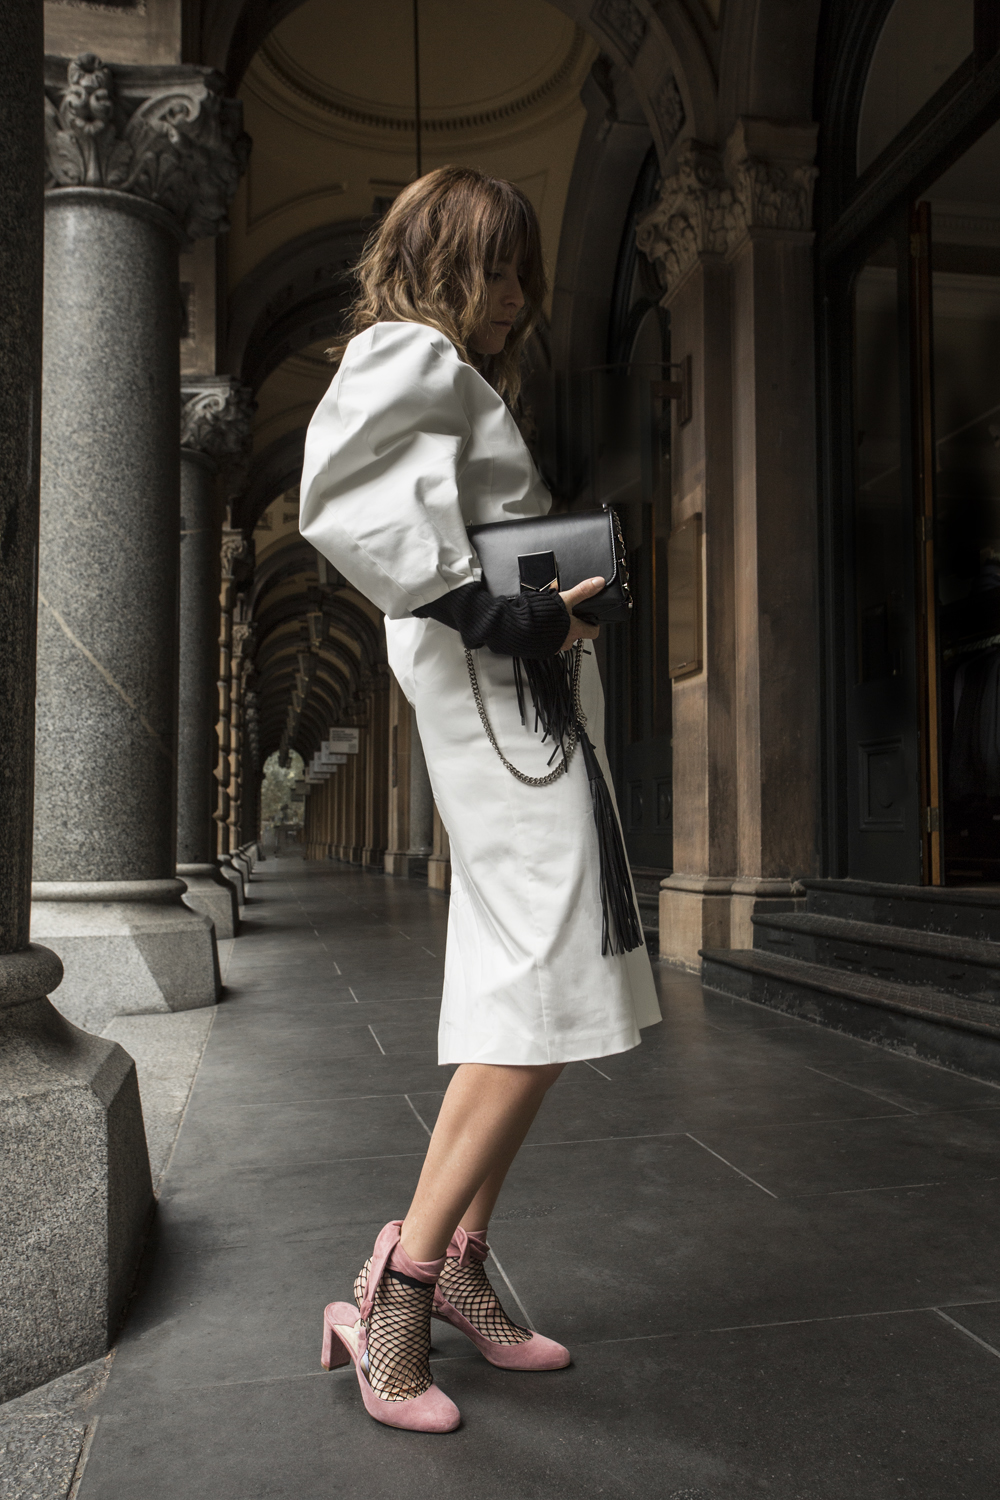 jimmy choo, shoes, bag, lockett, round sunglasses, monochrome, outfit, pink shoes, wrap around shoes, sandals, gold necklace, amanda shadforth